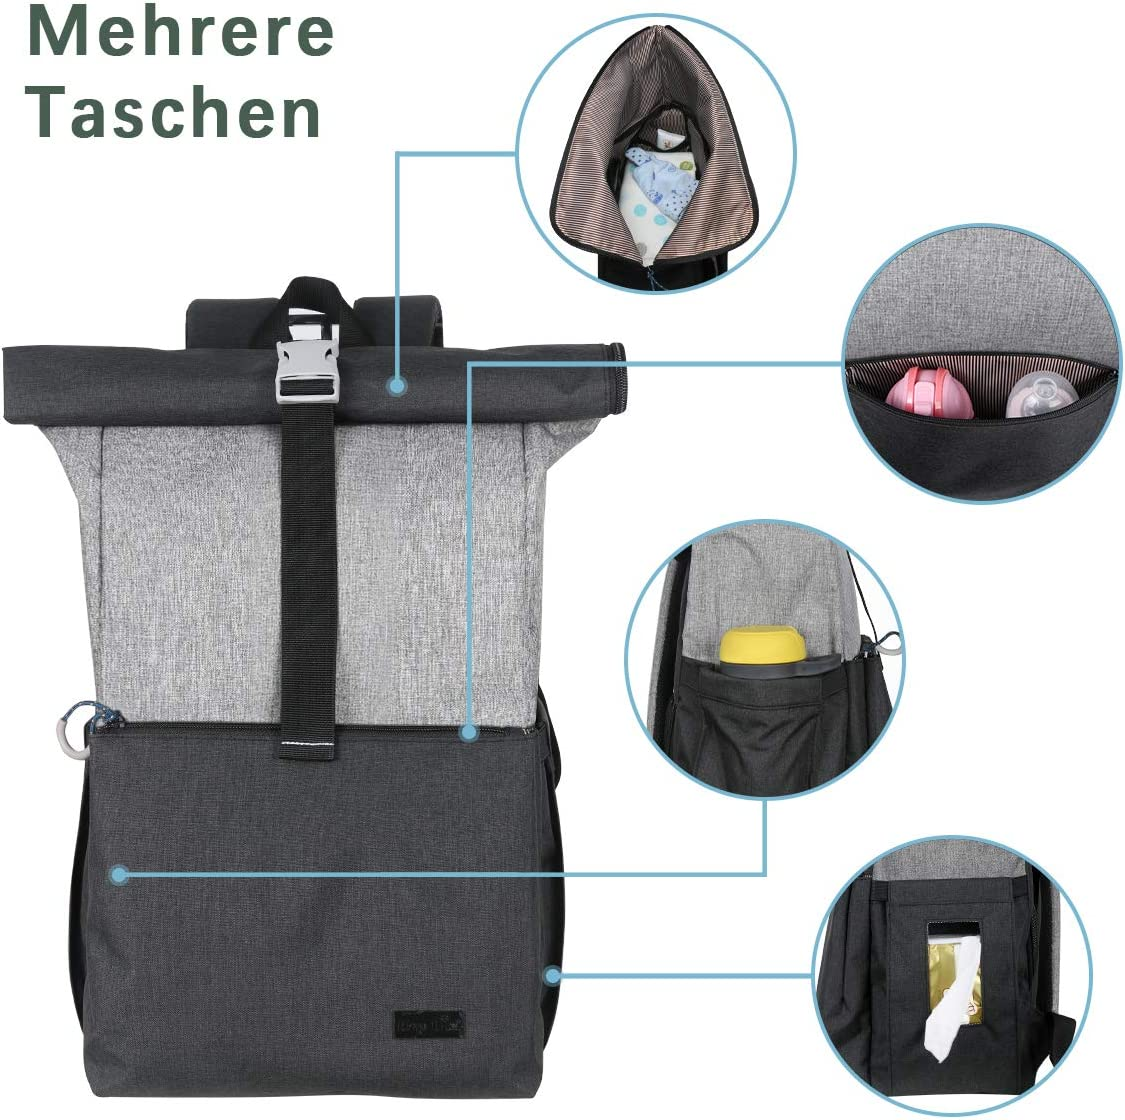 K-2006DG Large Double Deck Nappy Changing Back Pack Diaper Bags Lightweight Hap Tim Baby Changing Bag Backpack Roll top for Mom /& Dad